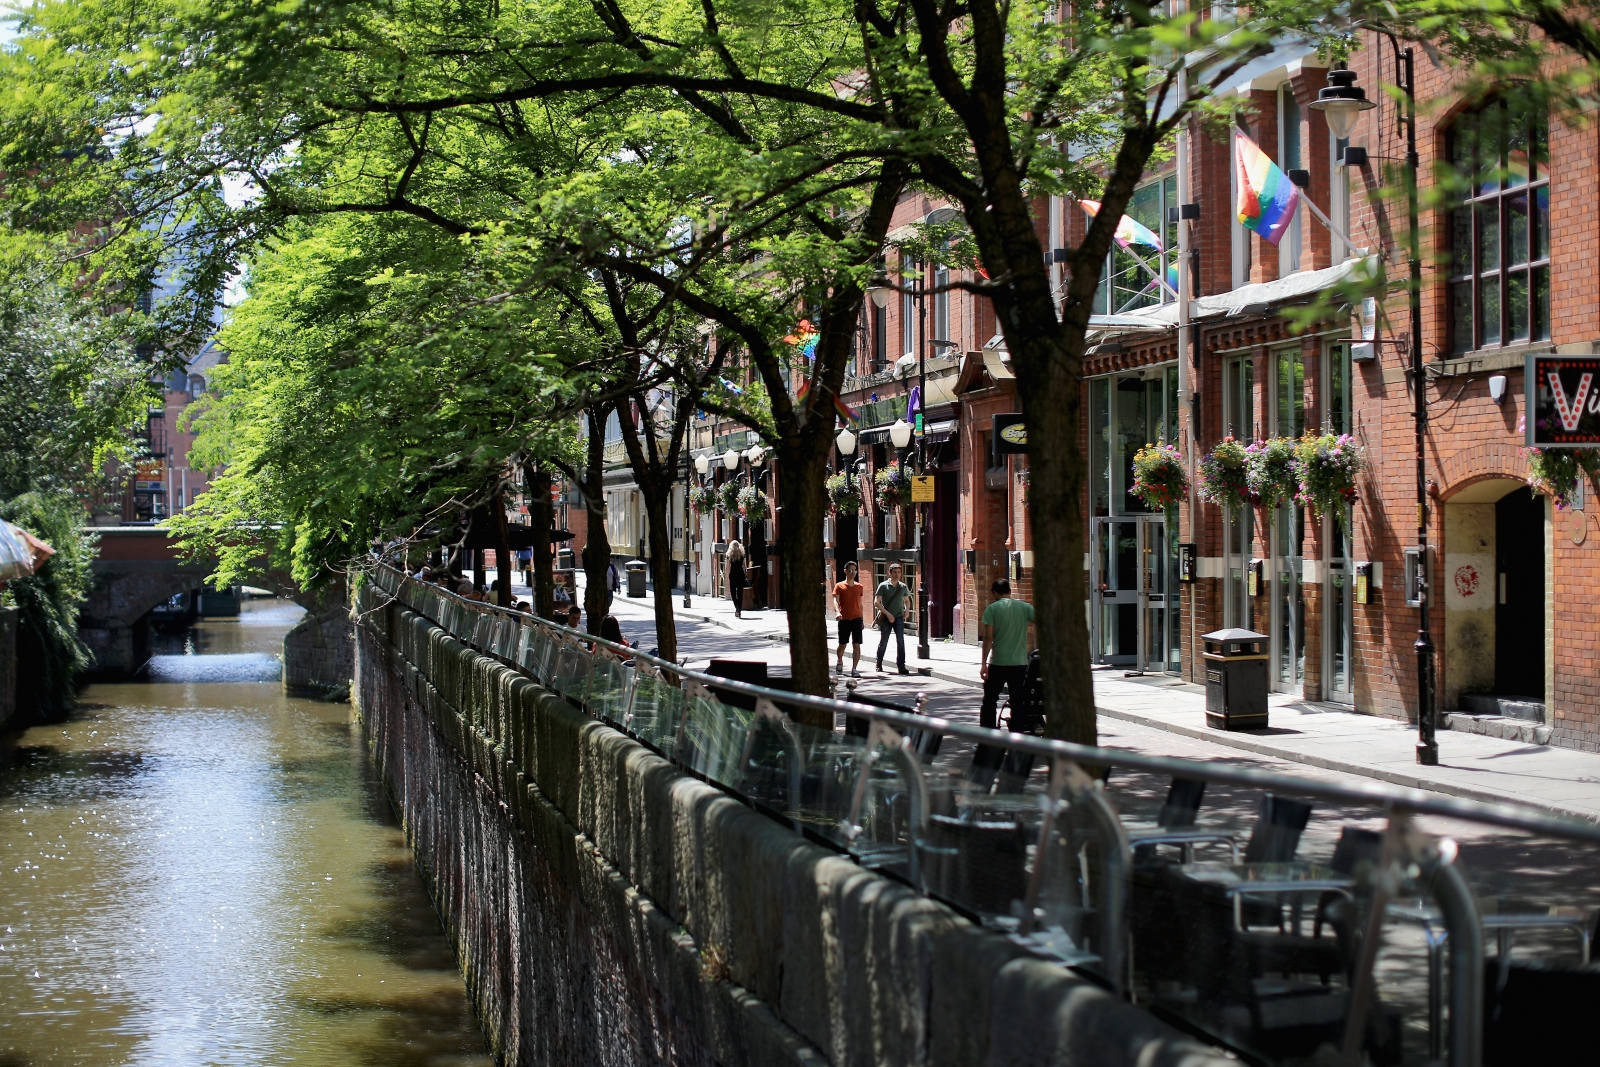 Canal Street in Manchester, where fears have been raised of an active serial killer by a psychology professor